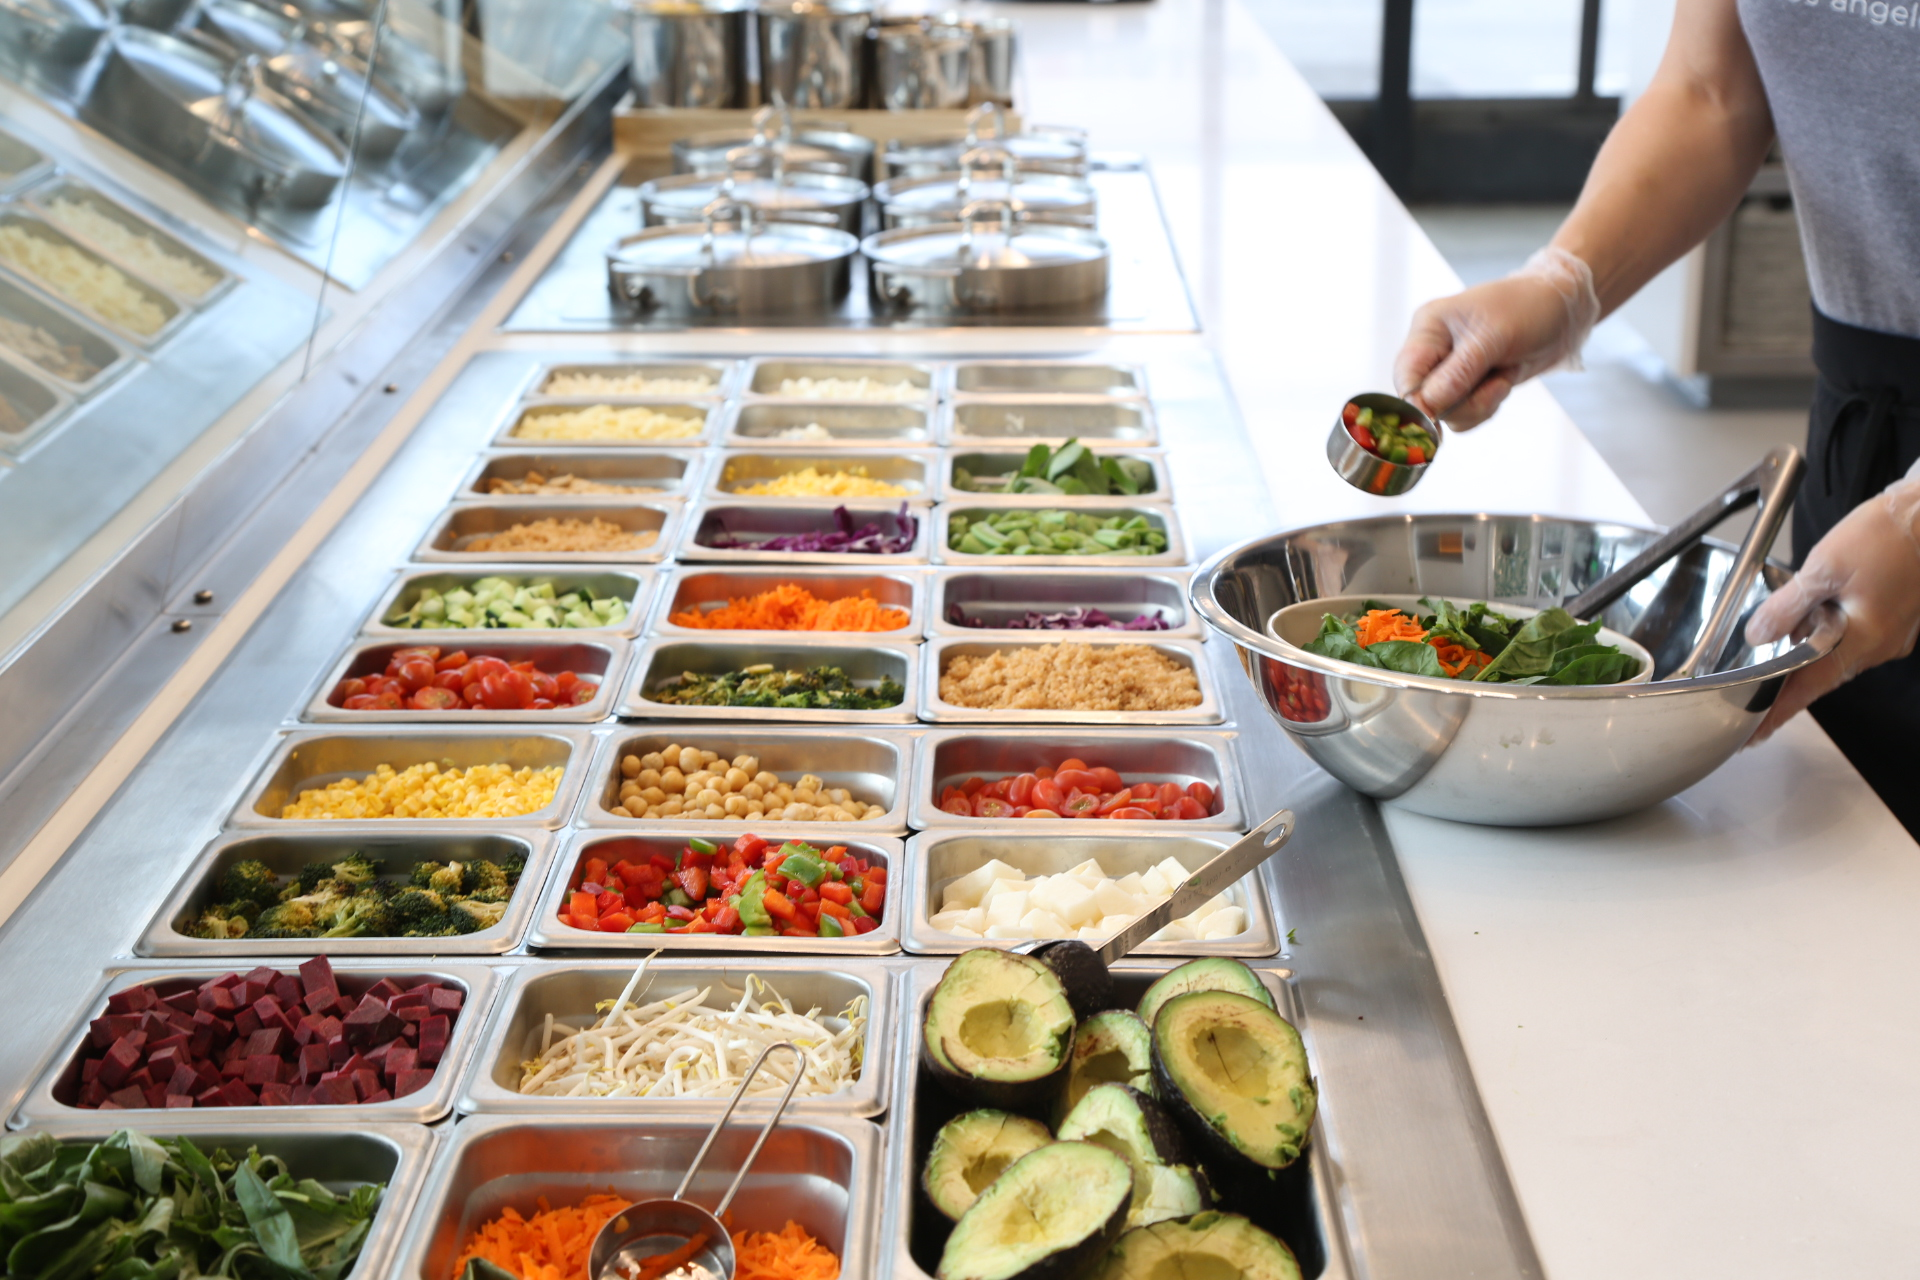 The line features over 30+ items that rotate all year long. Customers can choose from the 8 signature salads, 3 seasonal salads or customize and make their own.